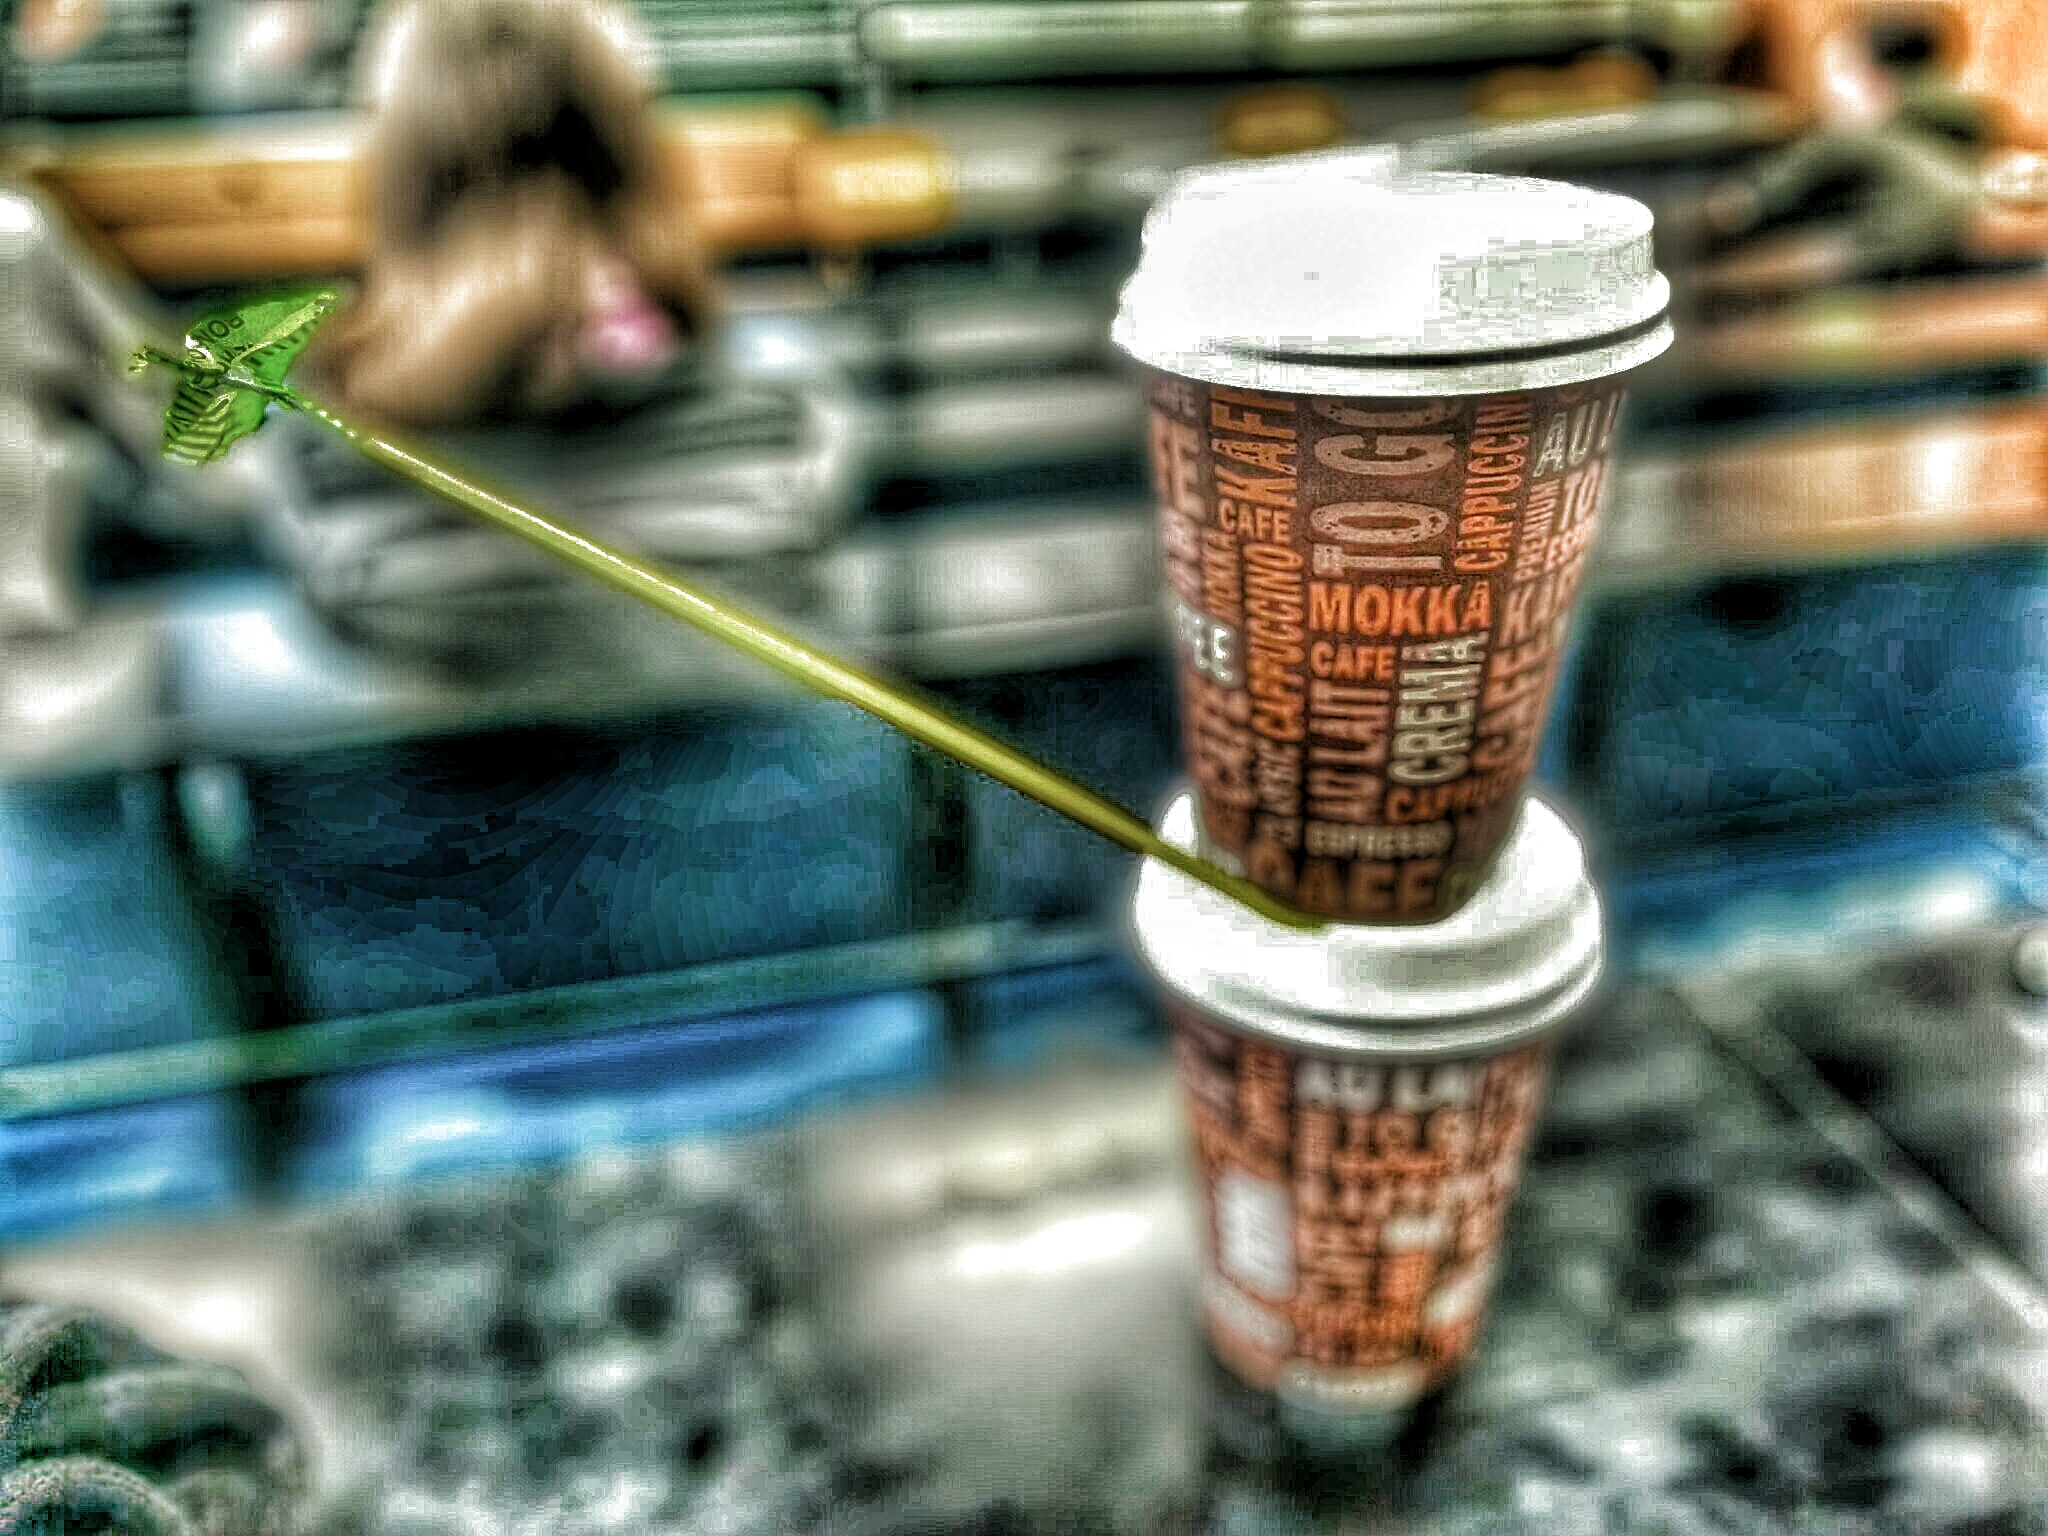 Artistic image of two paper coffee cups stacked on top of each other and a green bird made from bonbon wrapping paper flying away